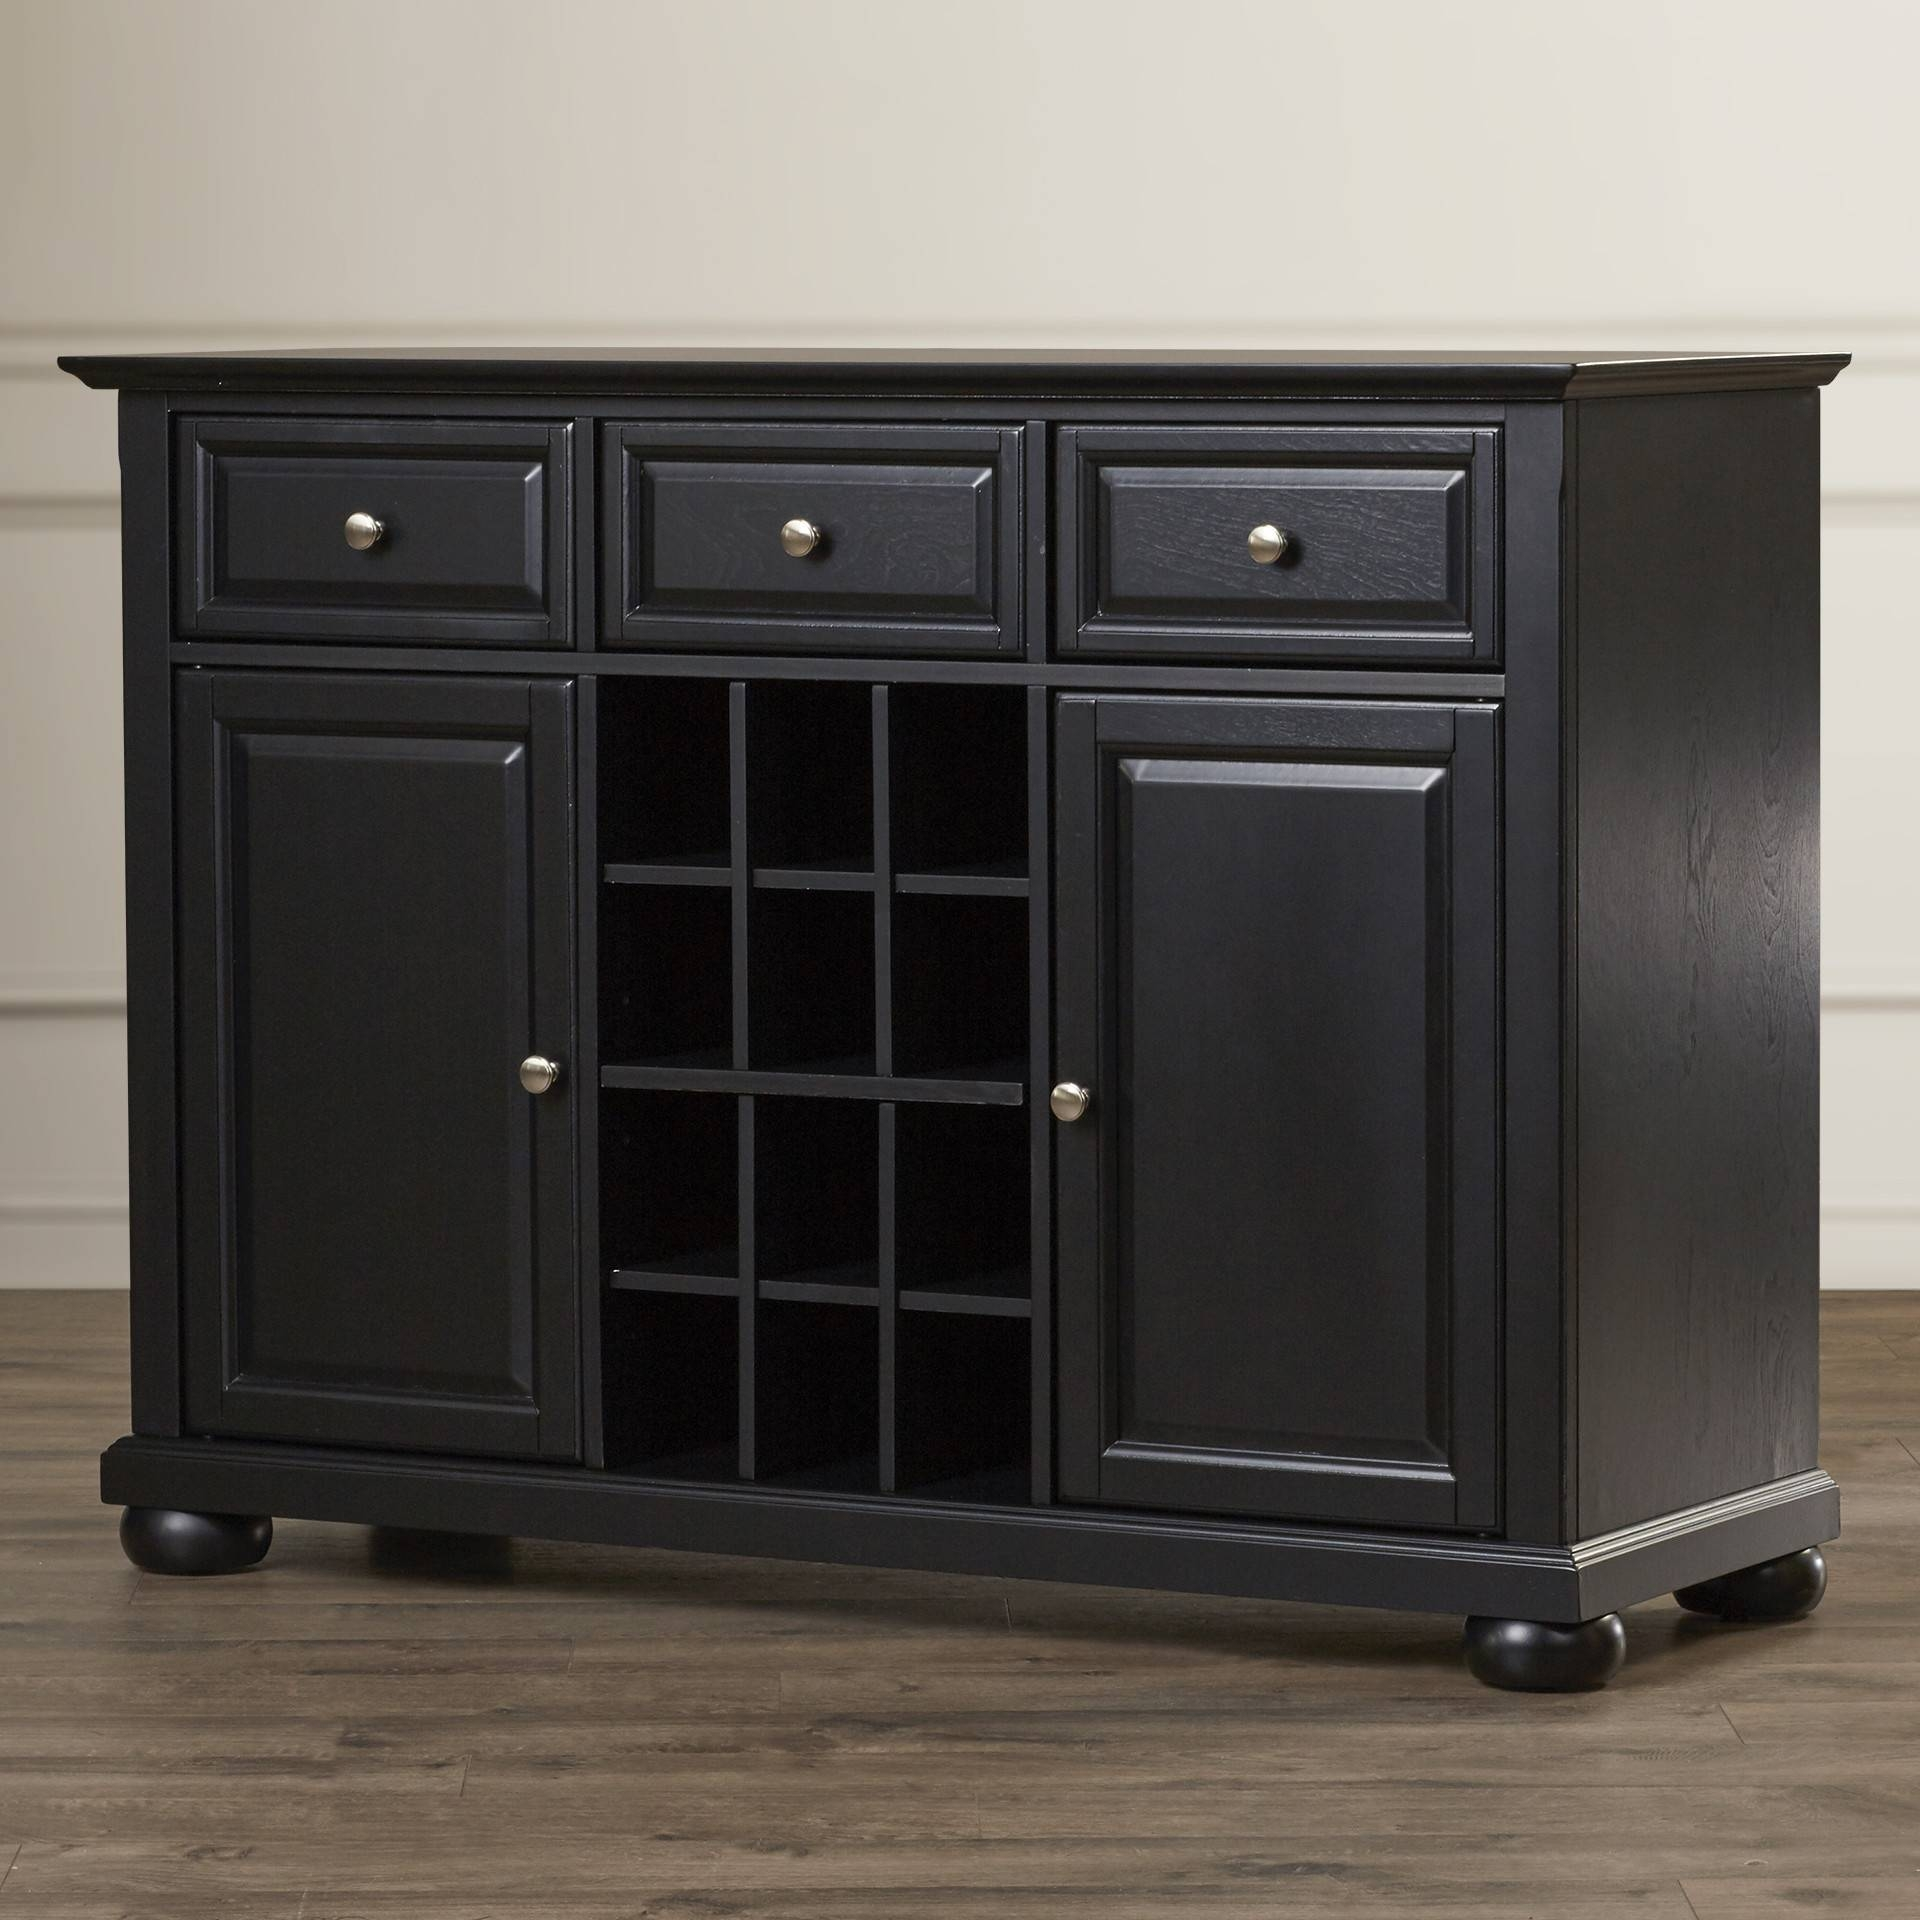 Furniture: Fashionable Stylish Buffets And Sideboards For Home For Dark Sideboards Furniture (#7 of 15)